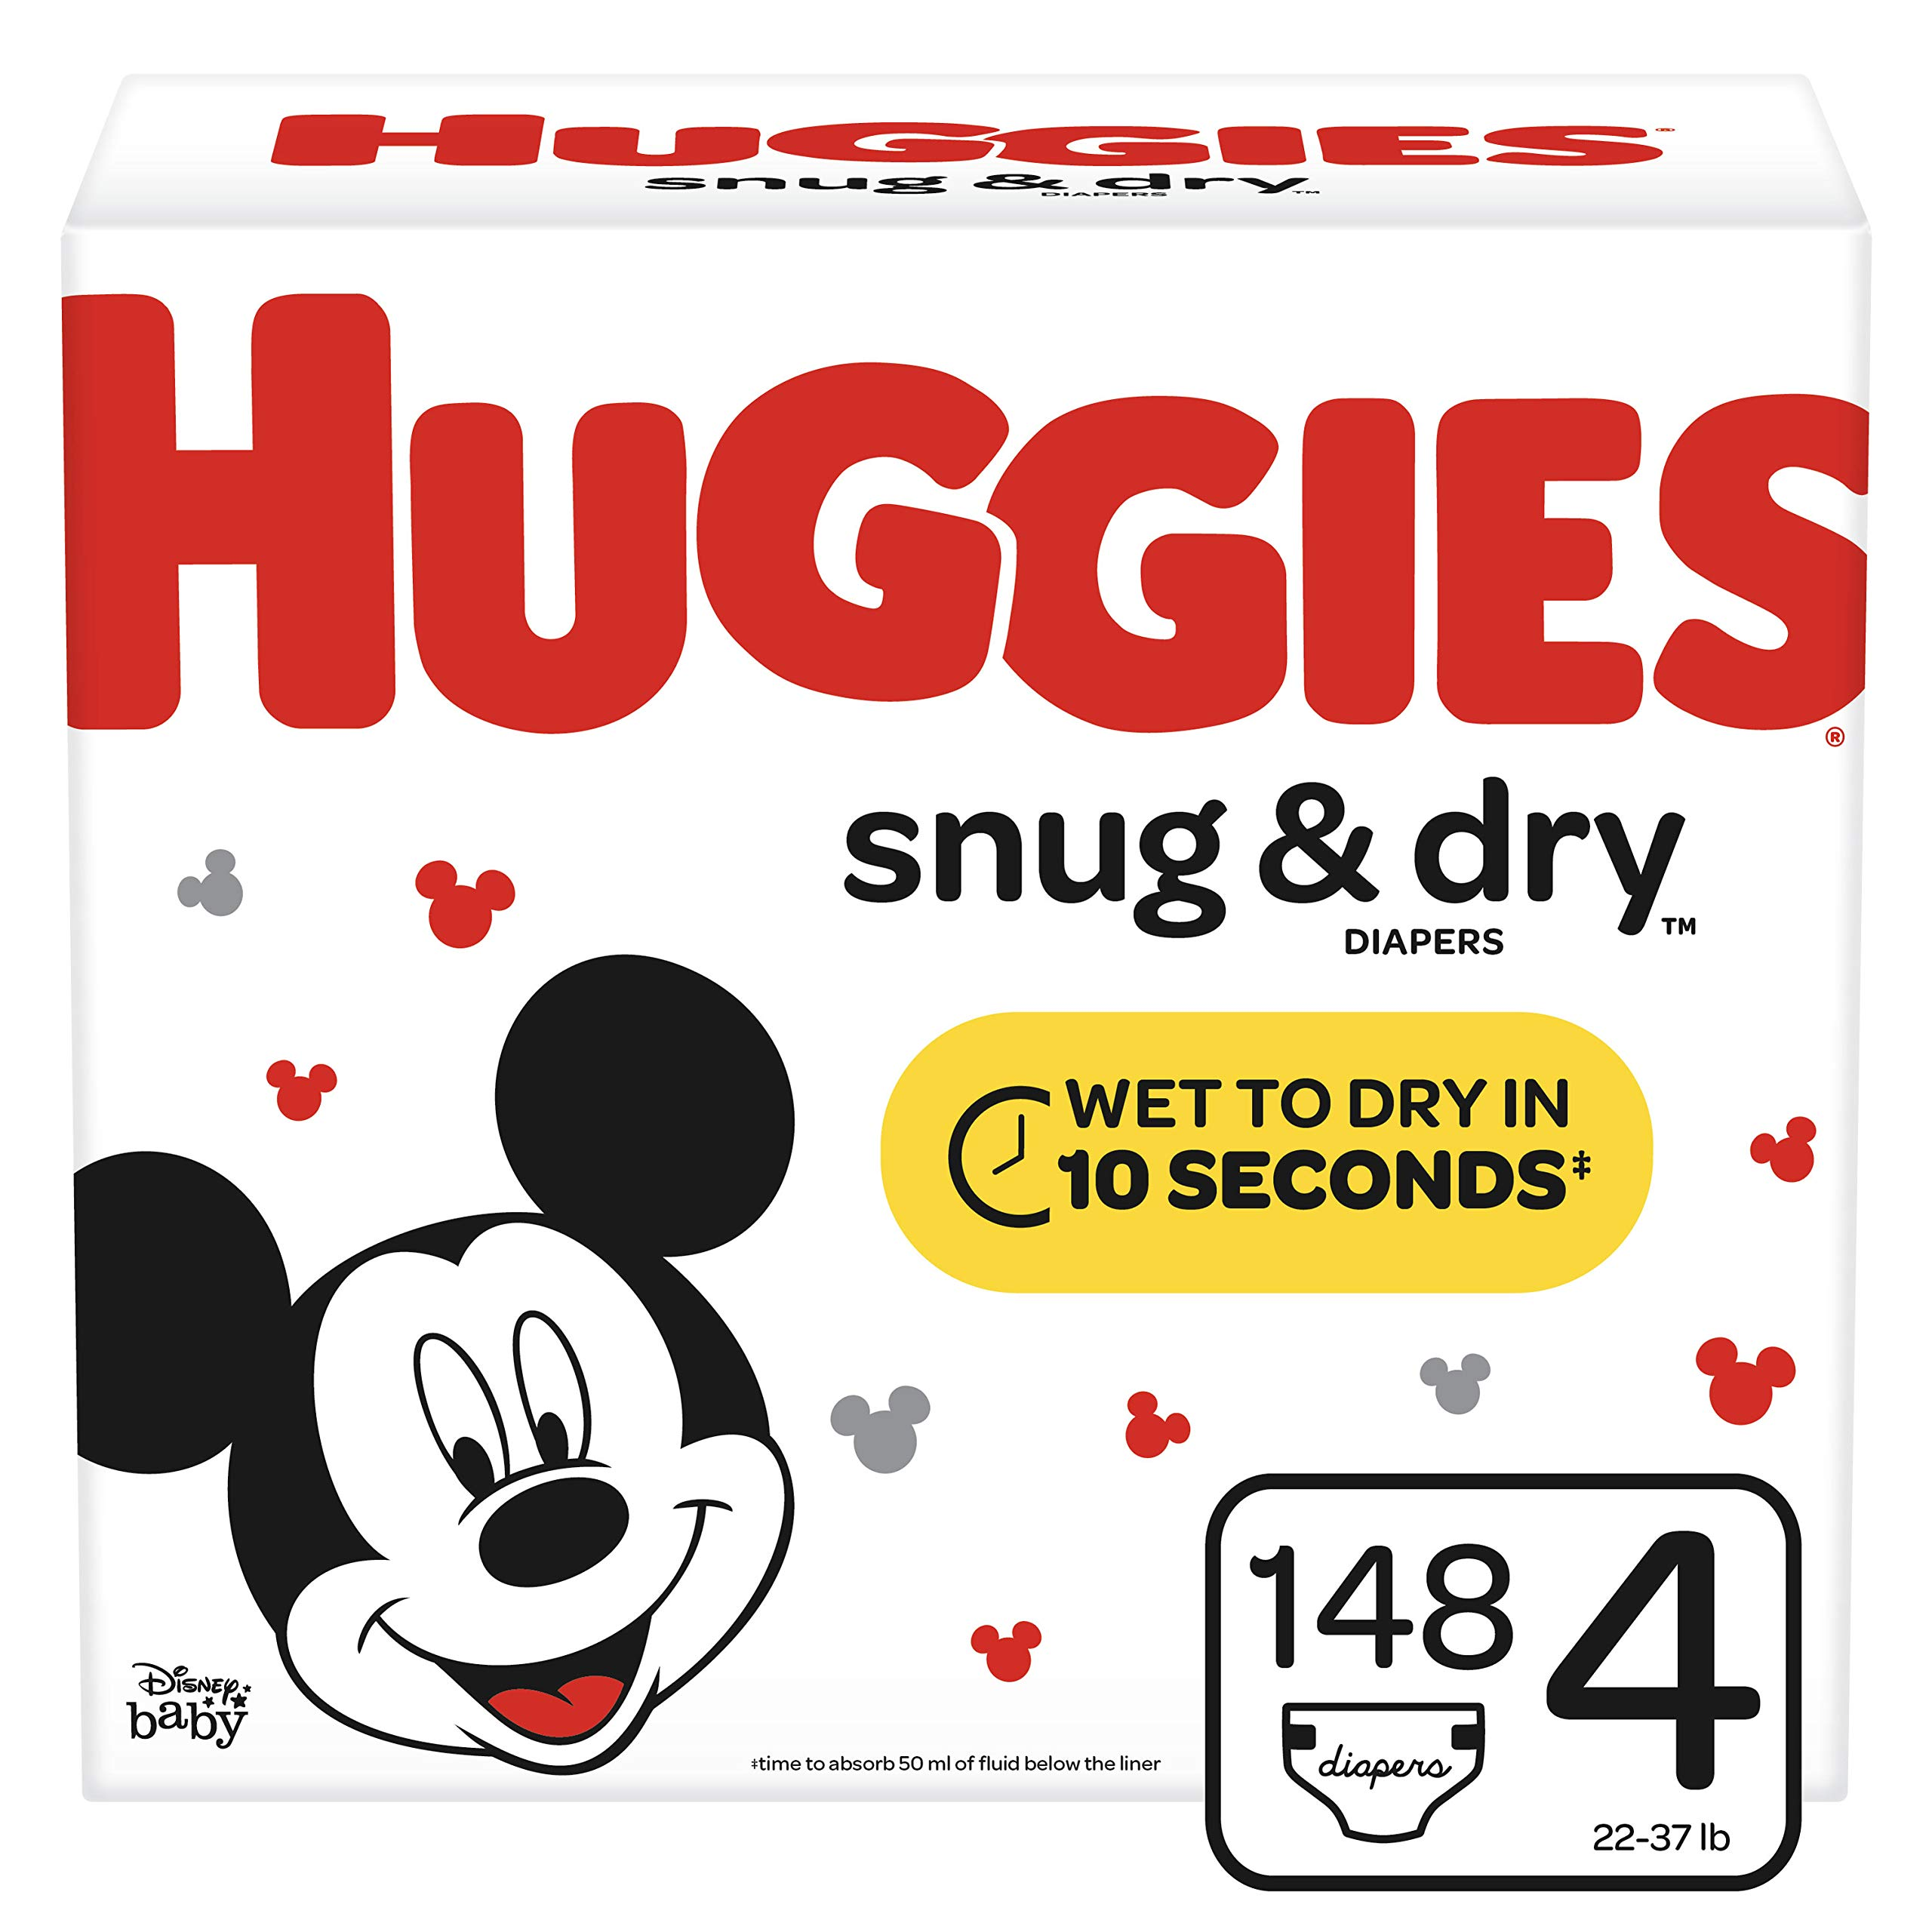 Huggies Snug & Dry Diapers, Size 4 (22-37 lb.), 148 Ct, Giant Pack (Packaging May Vary) by HUGGIES